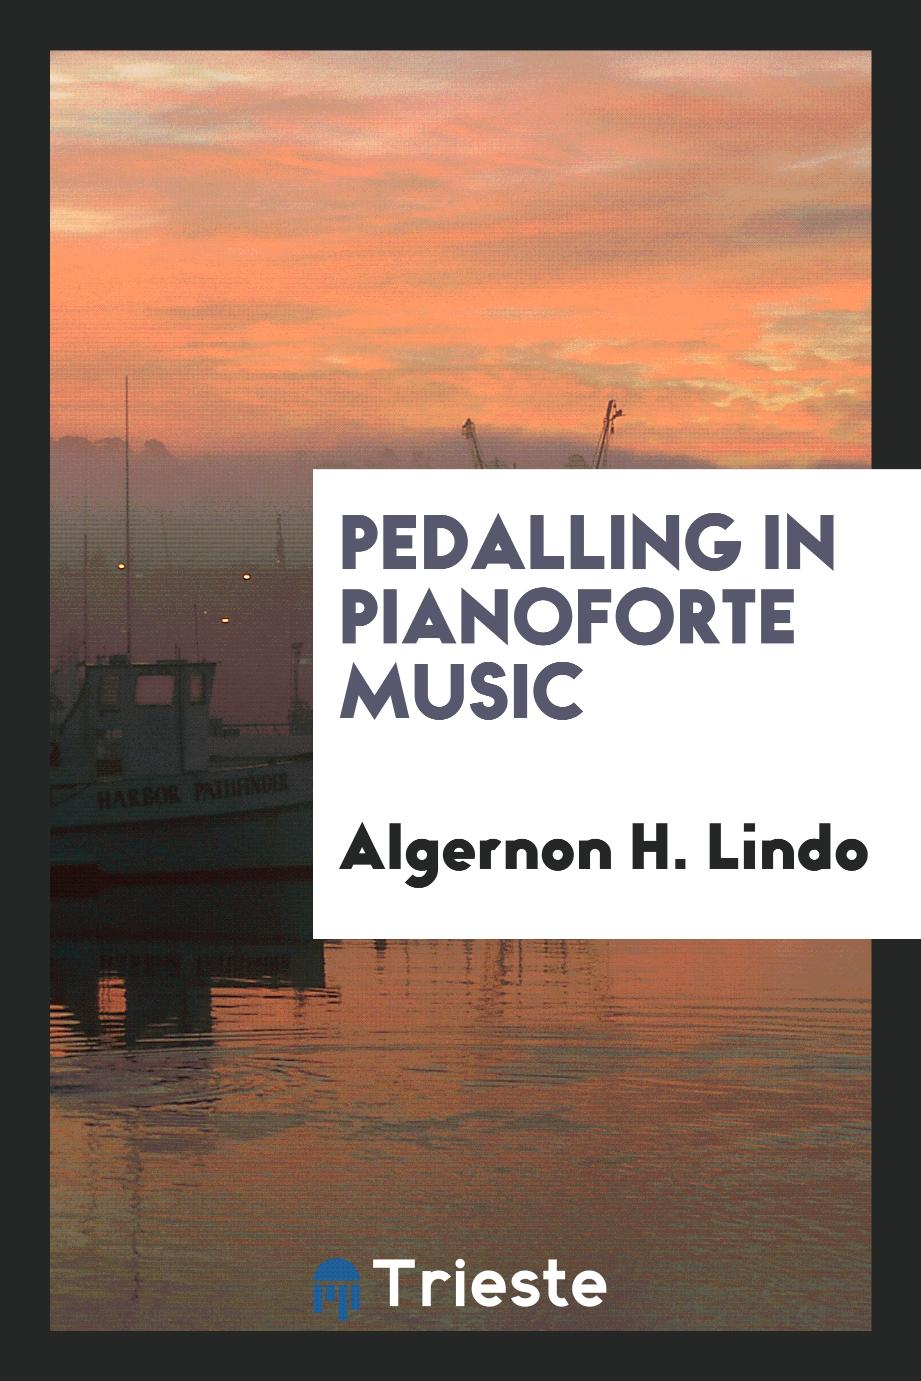 Pedalling in pianoforte music